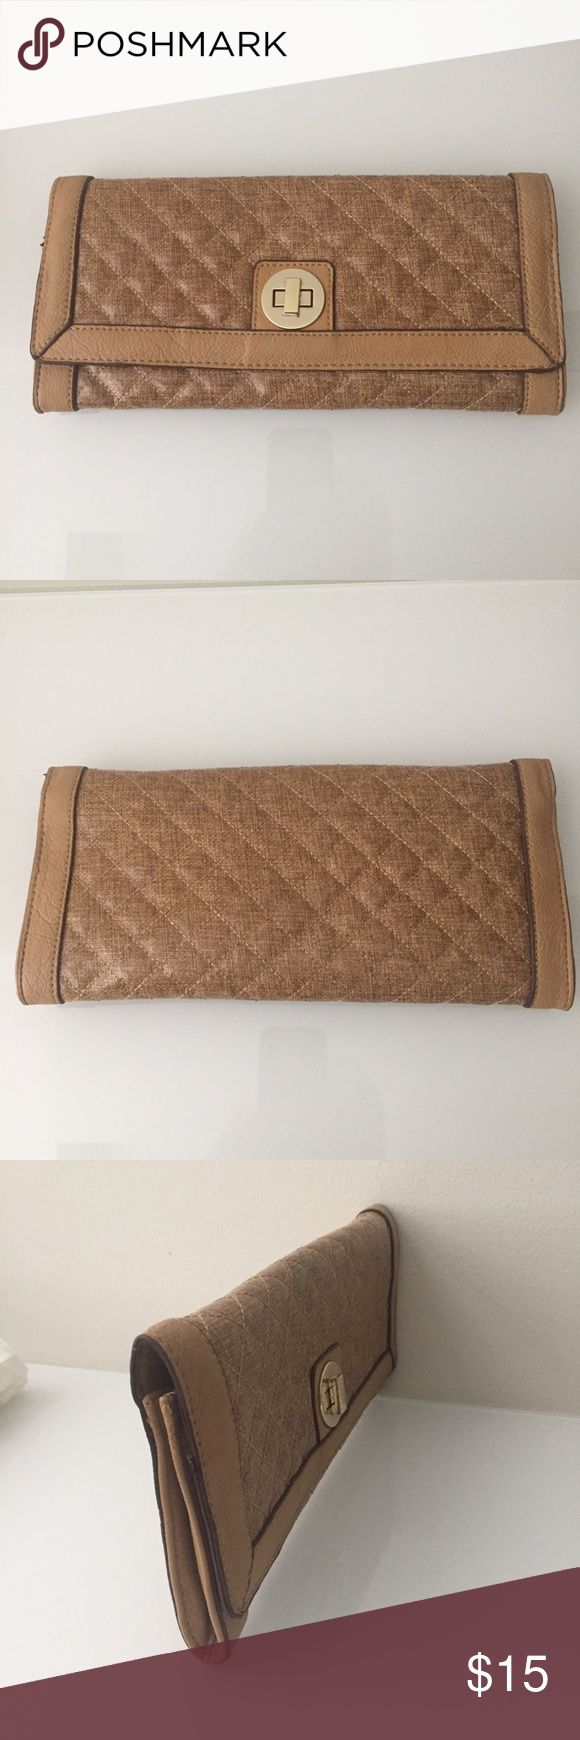 Sandra Roberts brown clutch purse Brown clutch purse in excellent condition. Just missing the shoulder strap attachment.   Purse has three pockets for storage. Bags Clutches & Wristlets